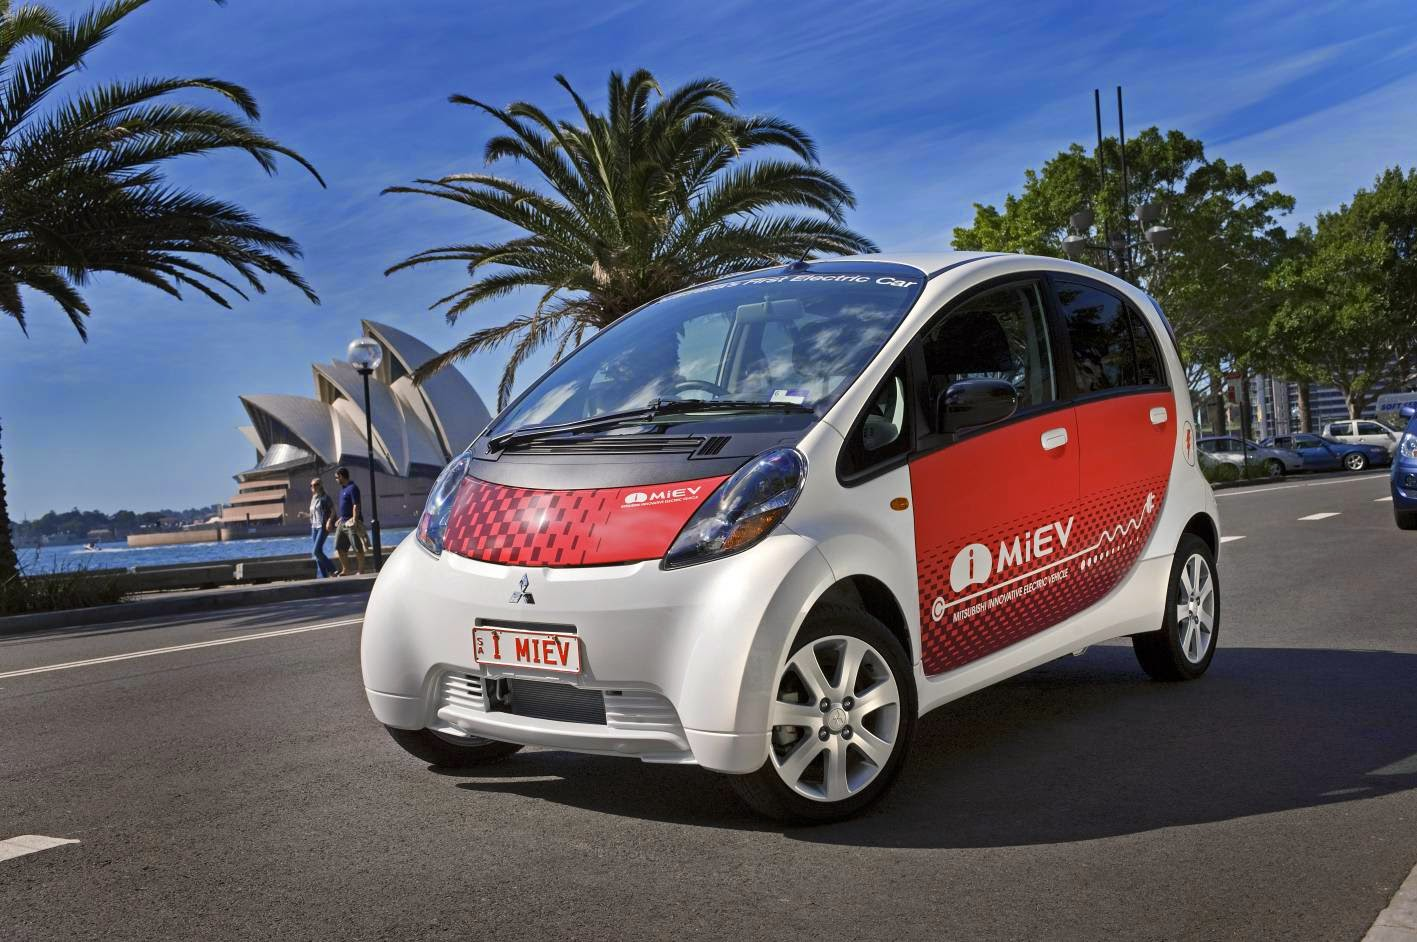 Mitsubishi Motors Cuts Imiev Price By Up To 9 100 In